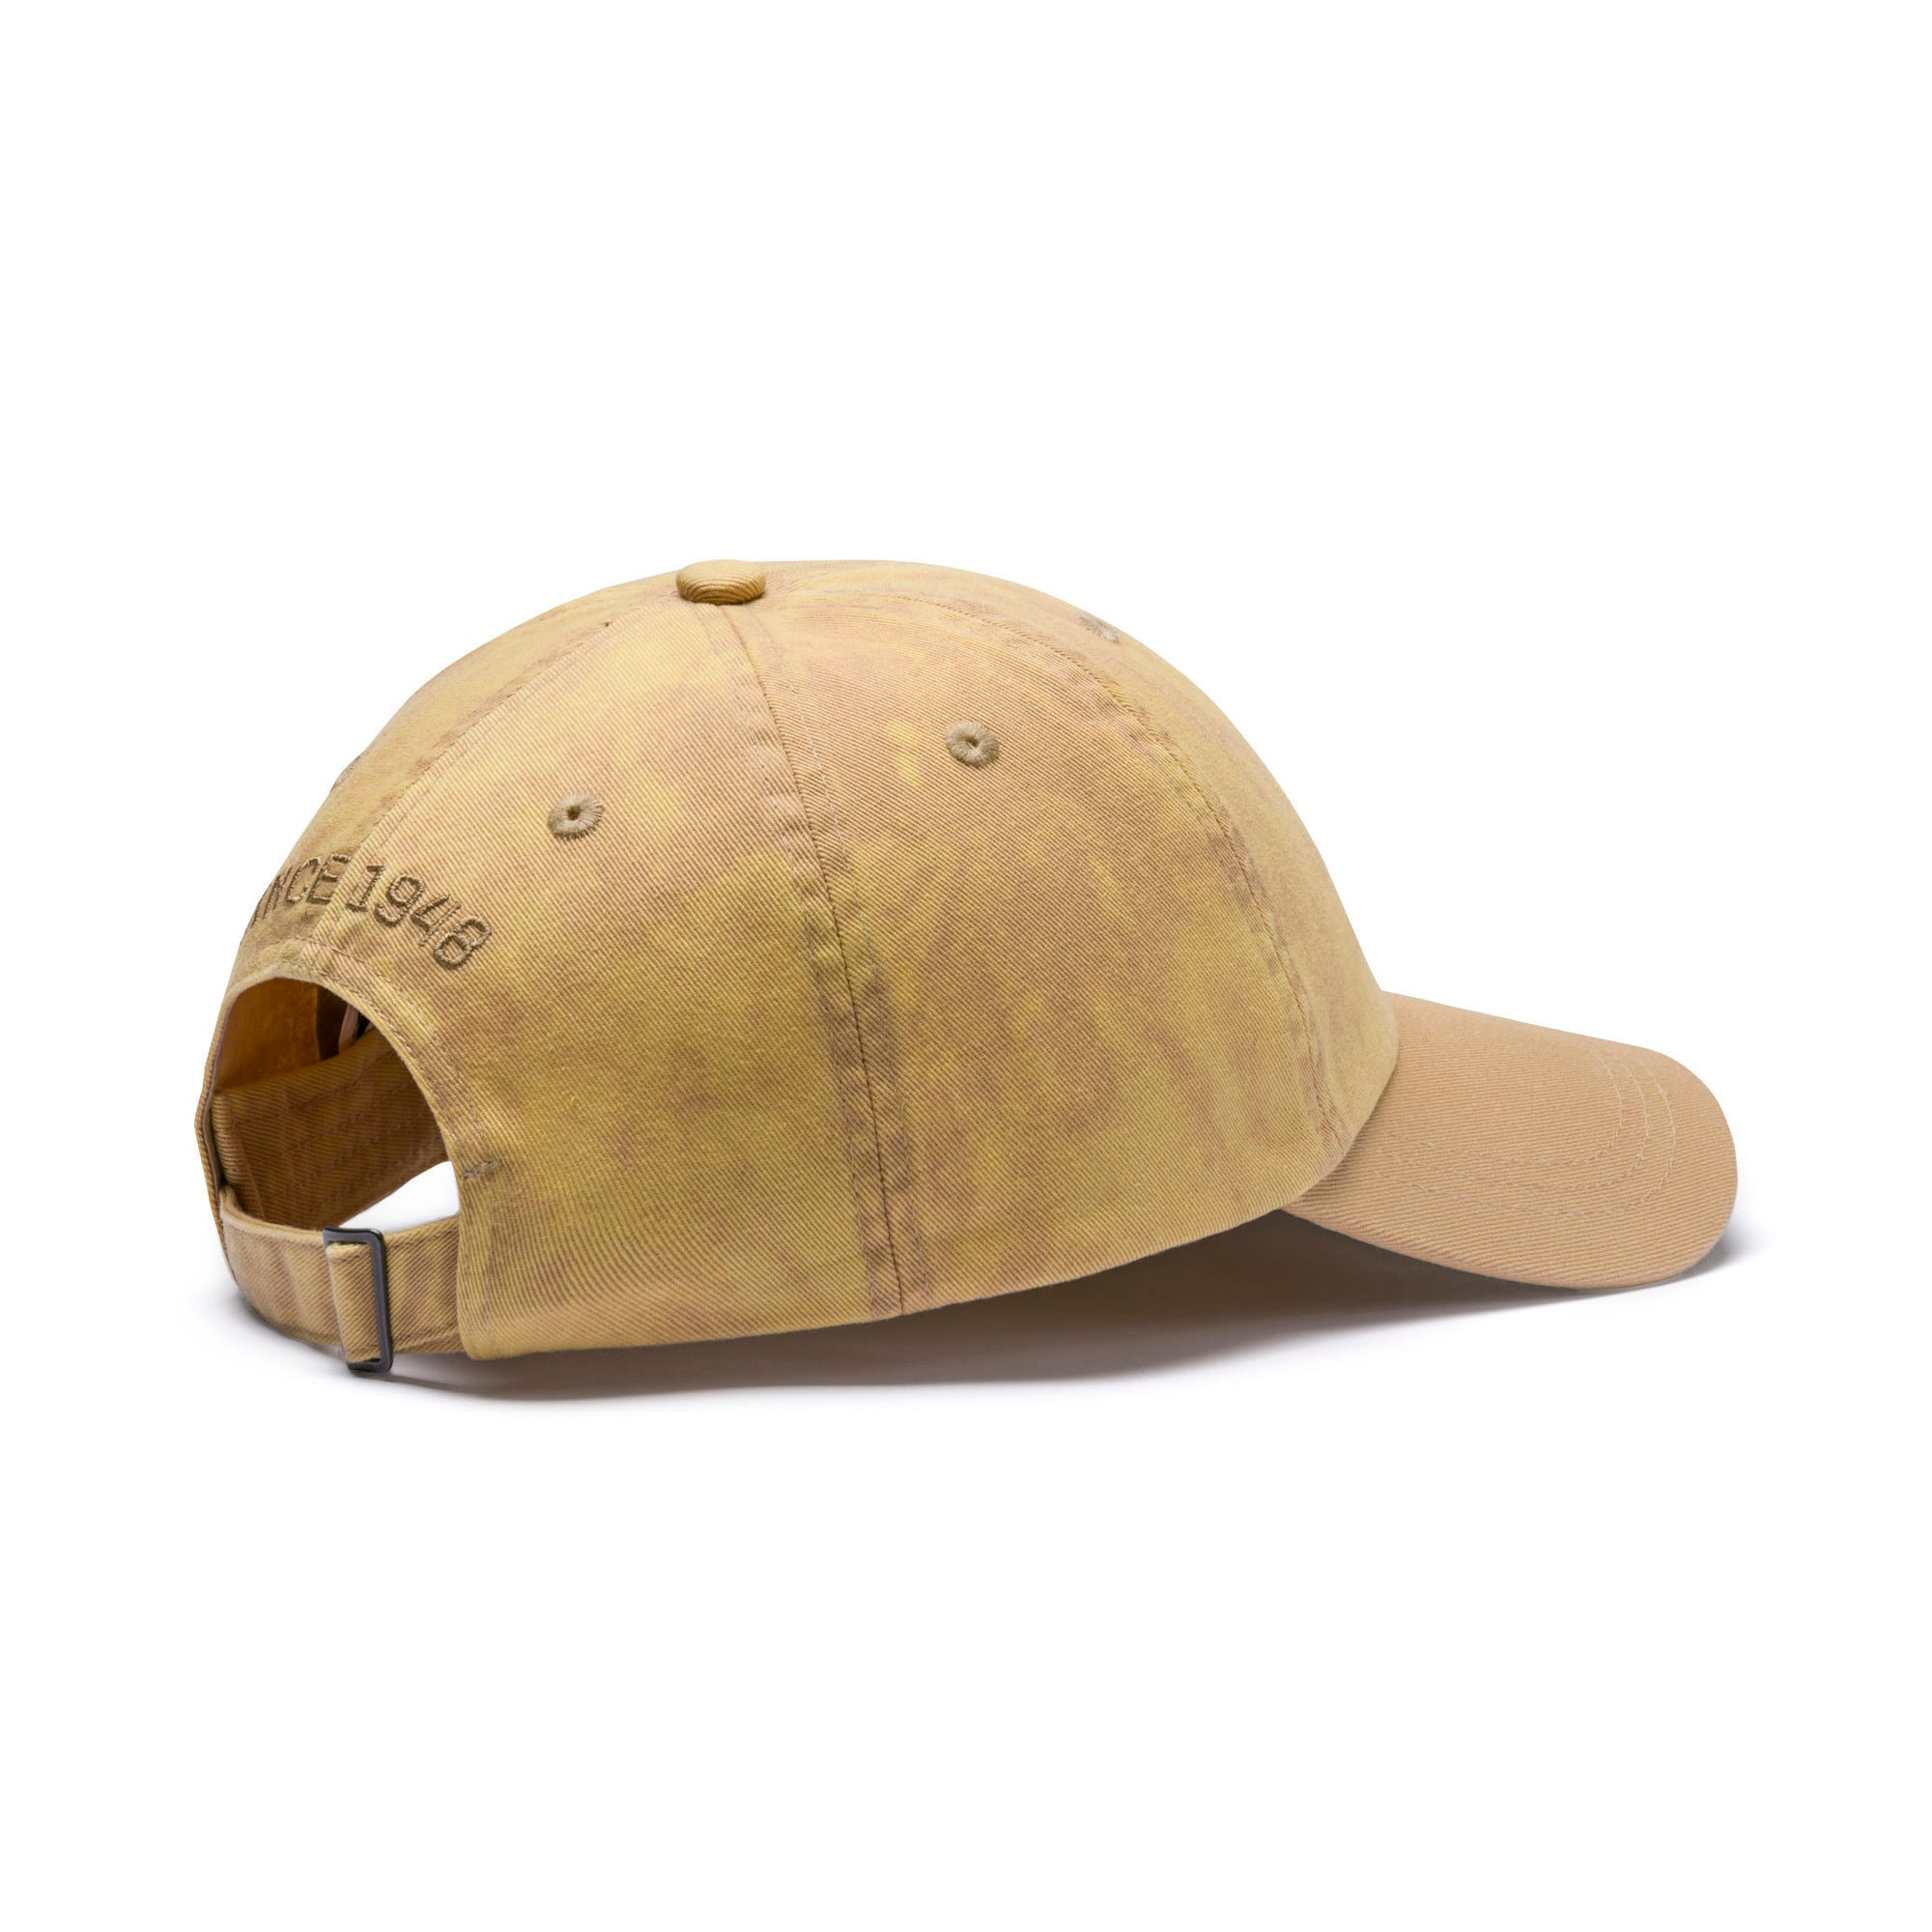 ARCHIVE BB cap, Taos Taupe, large